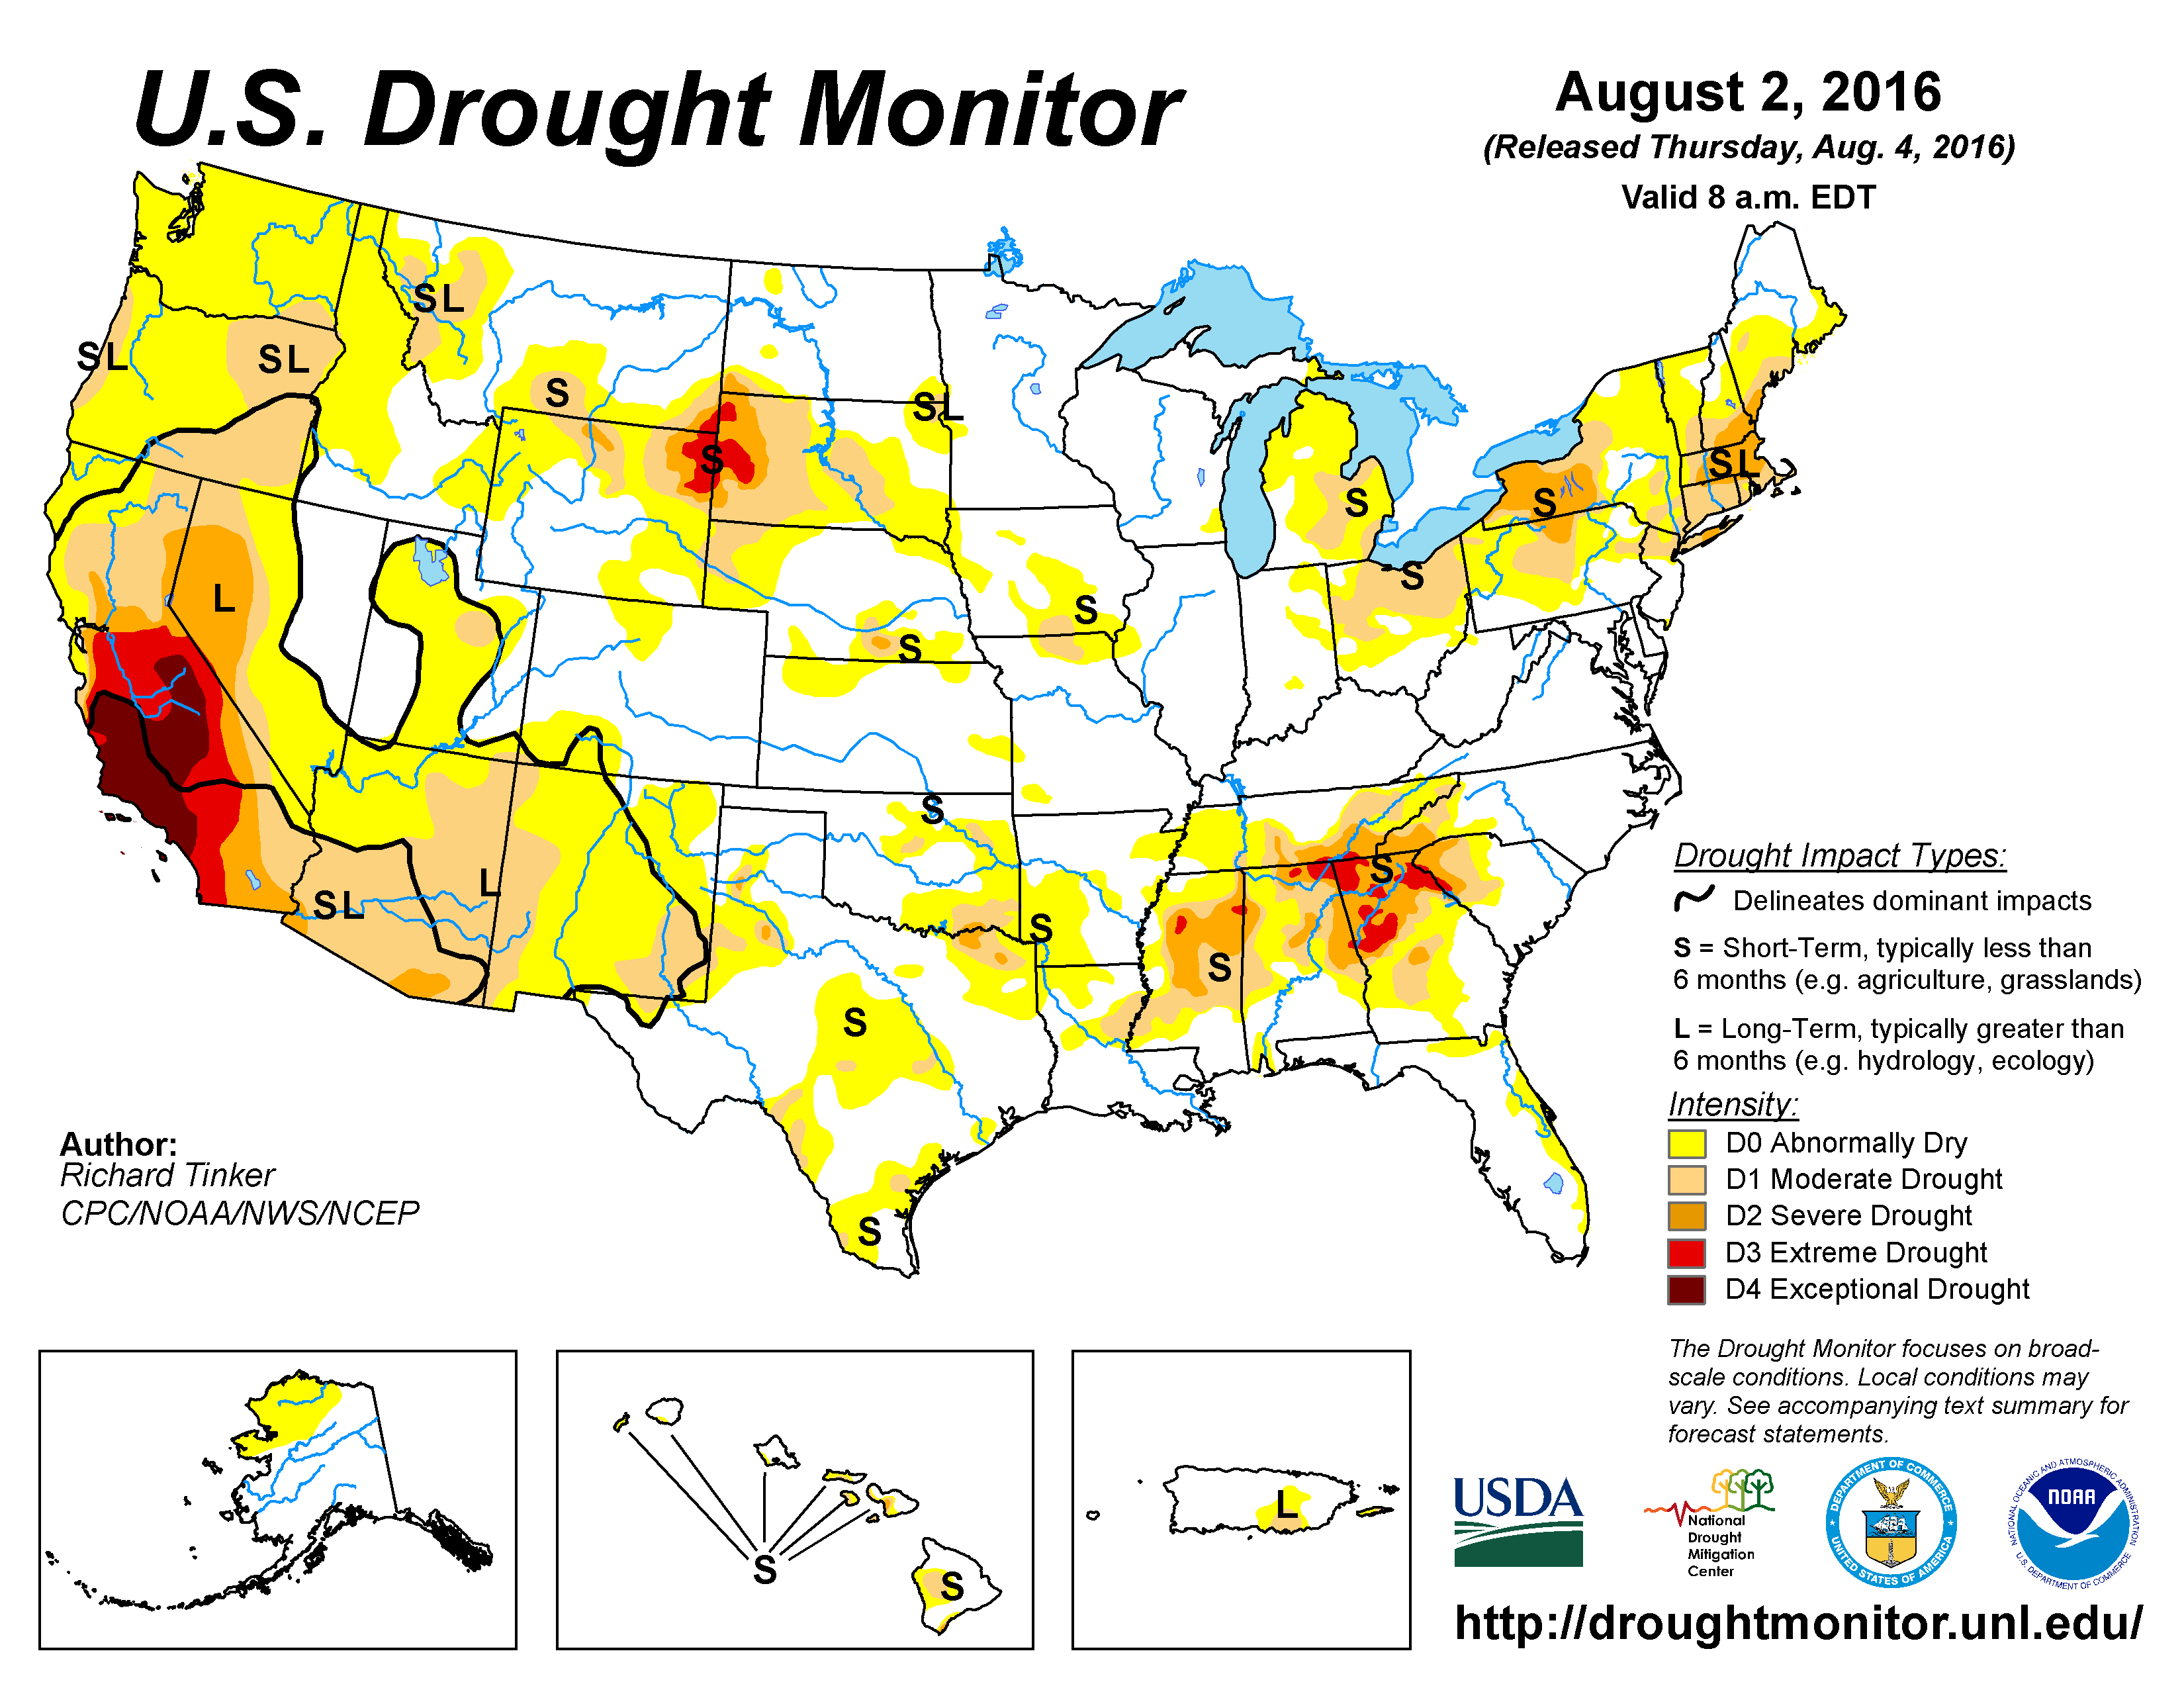 The U.S. Drought Monitor drought map valid August 2, 2016